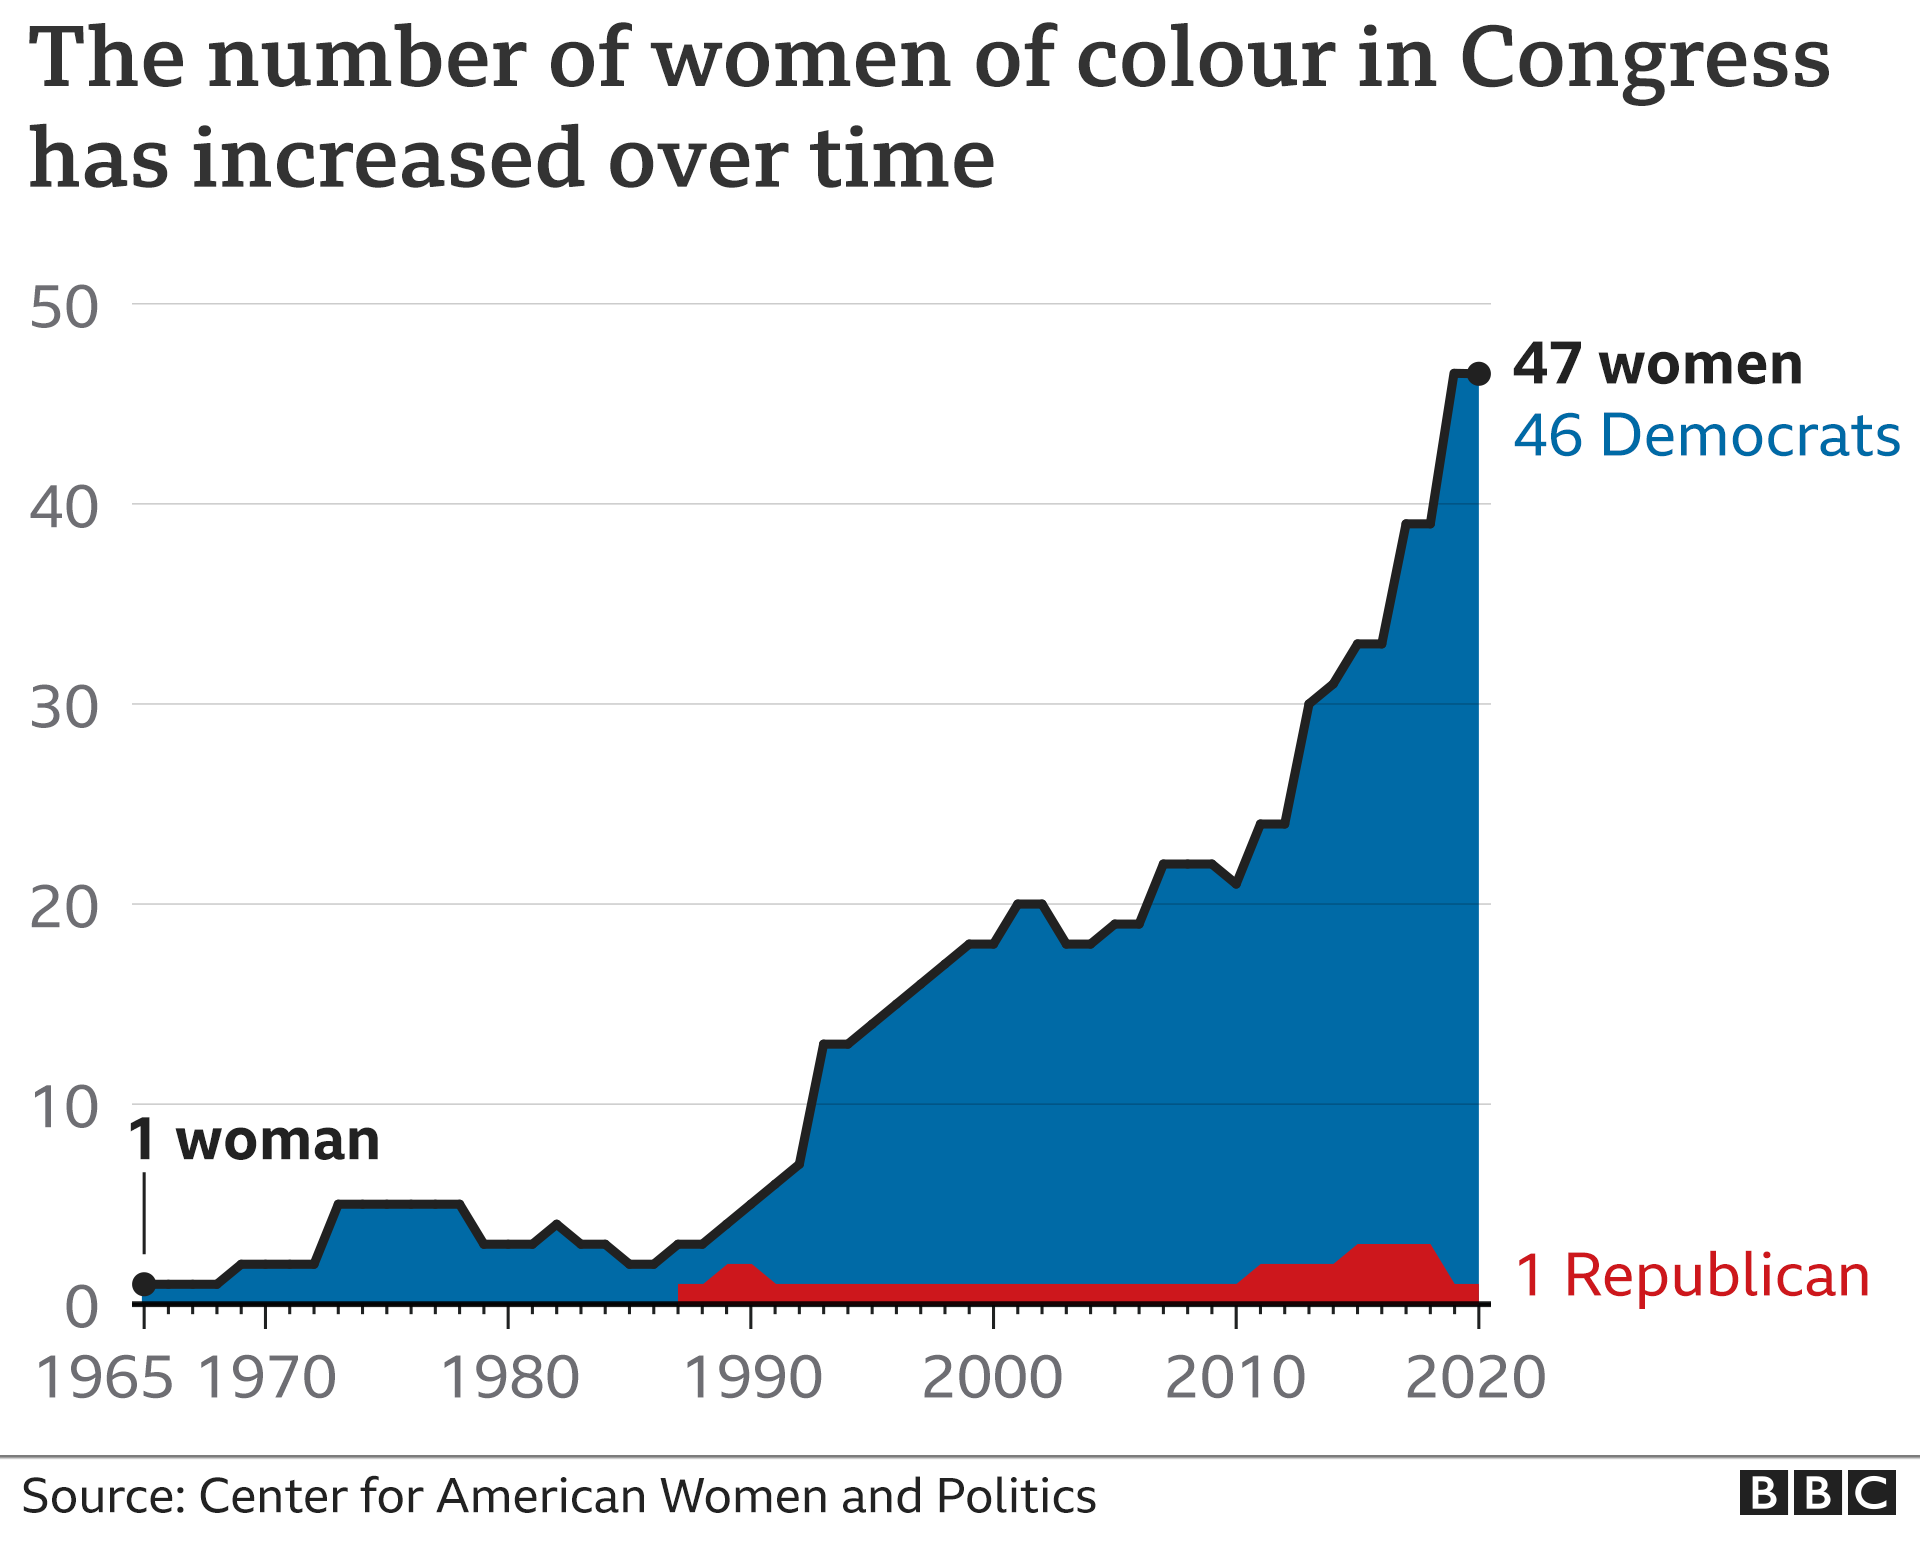 Chart showing the rising number of women of colour in Congress